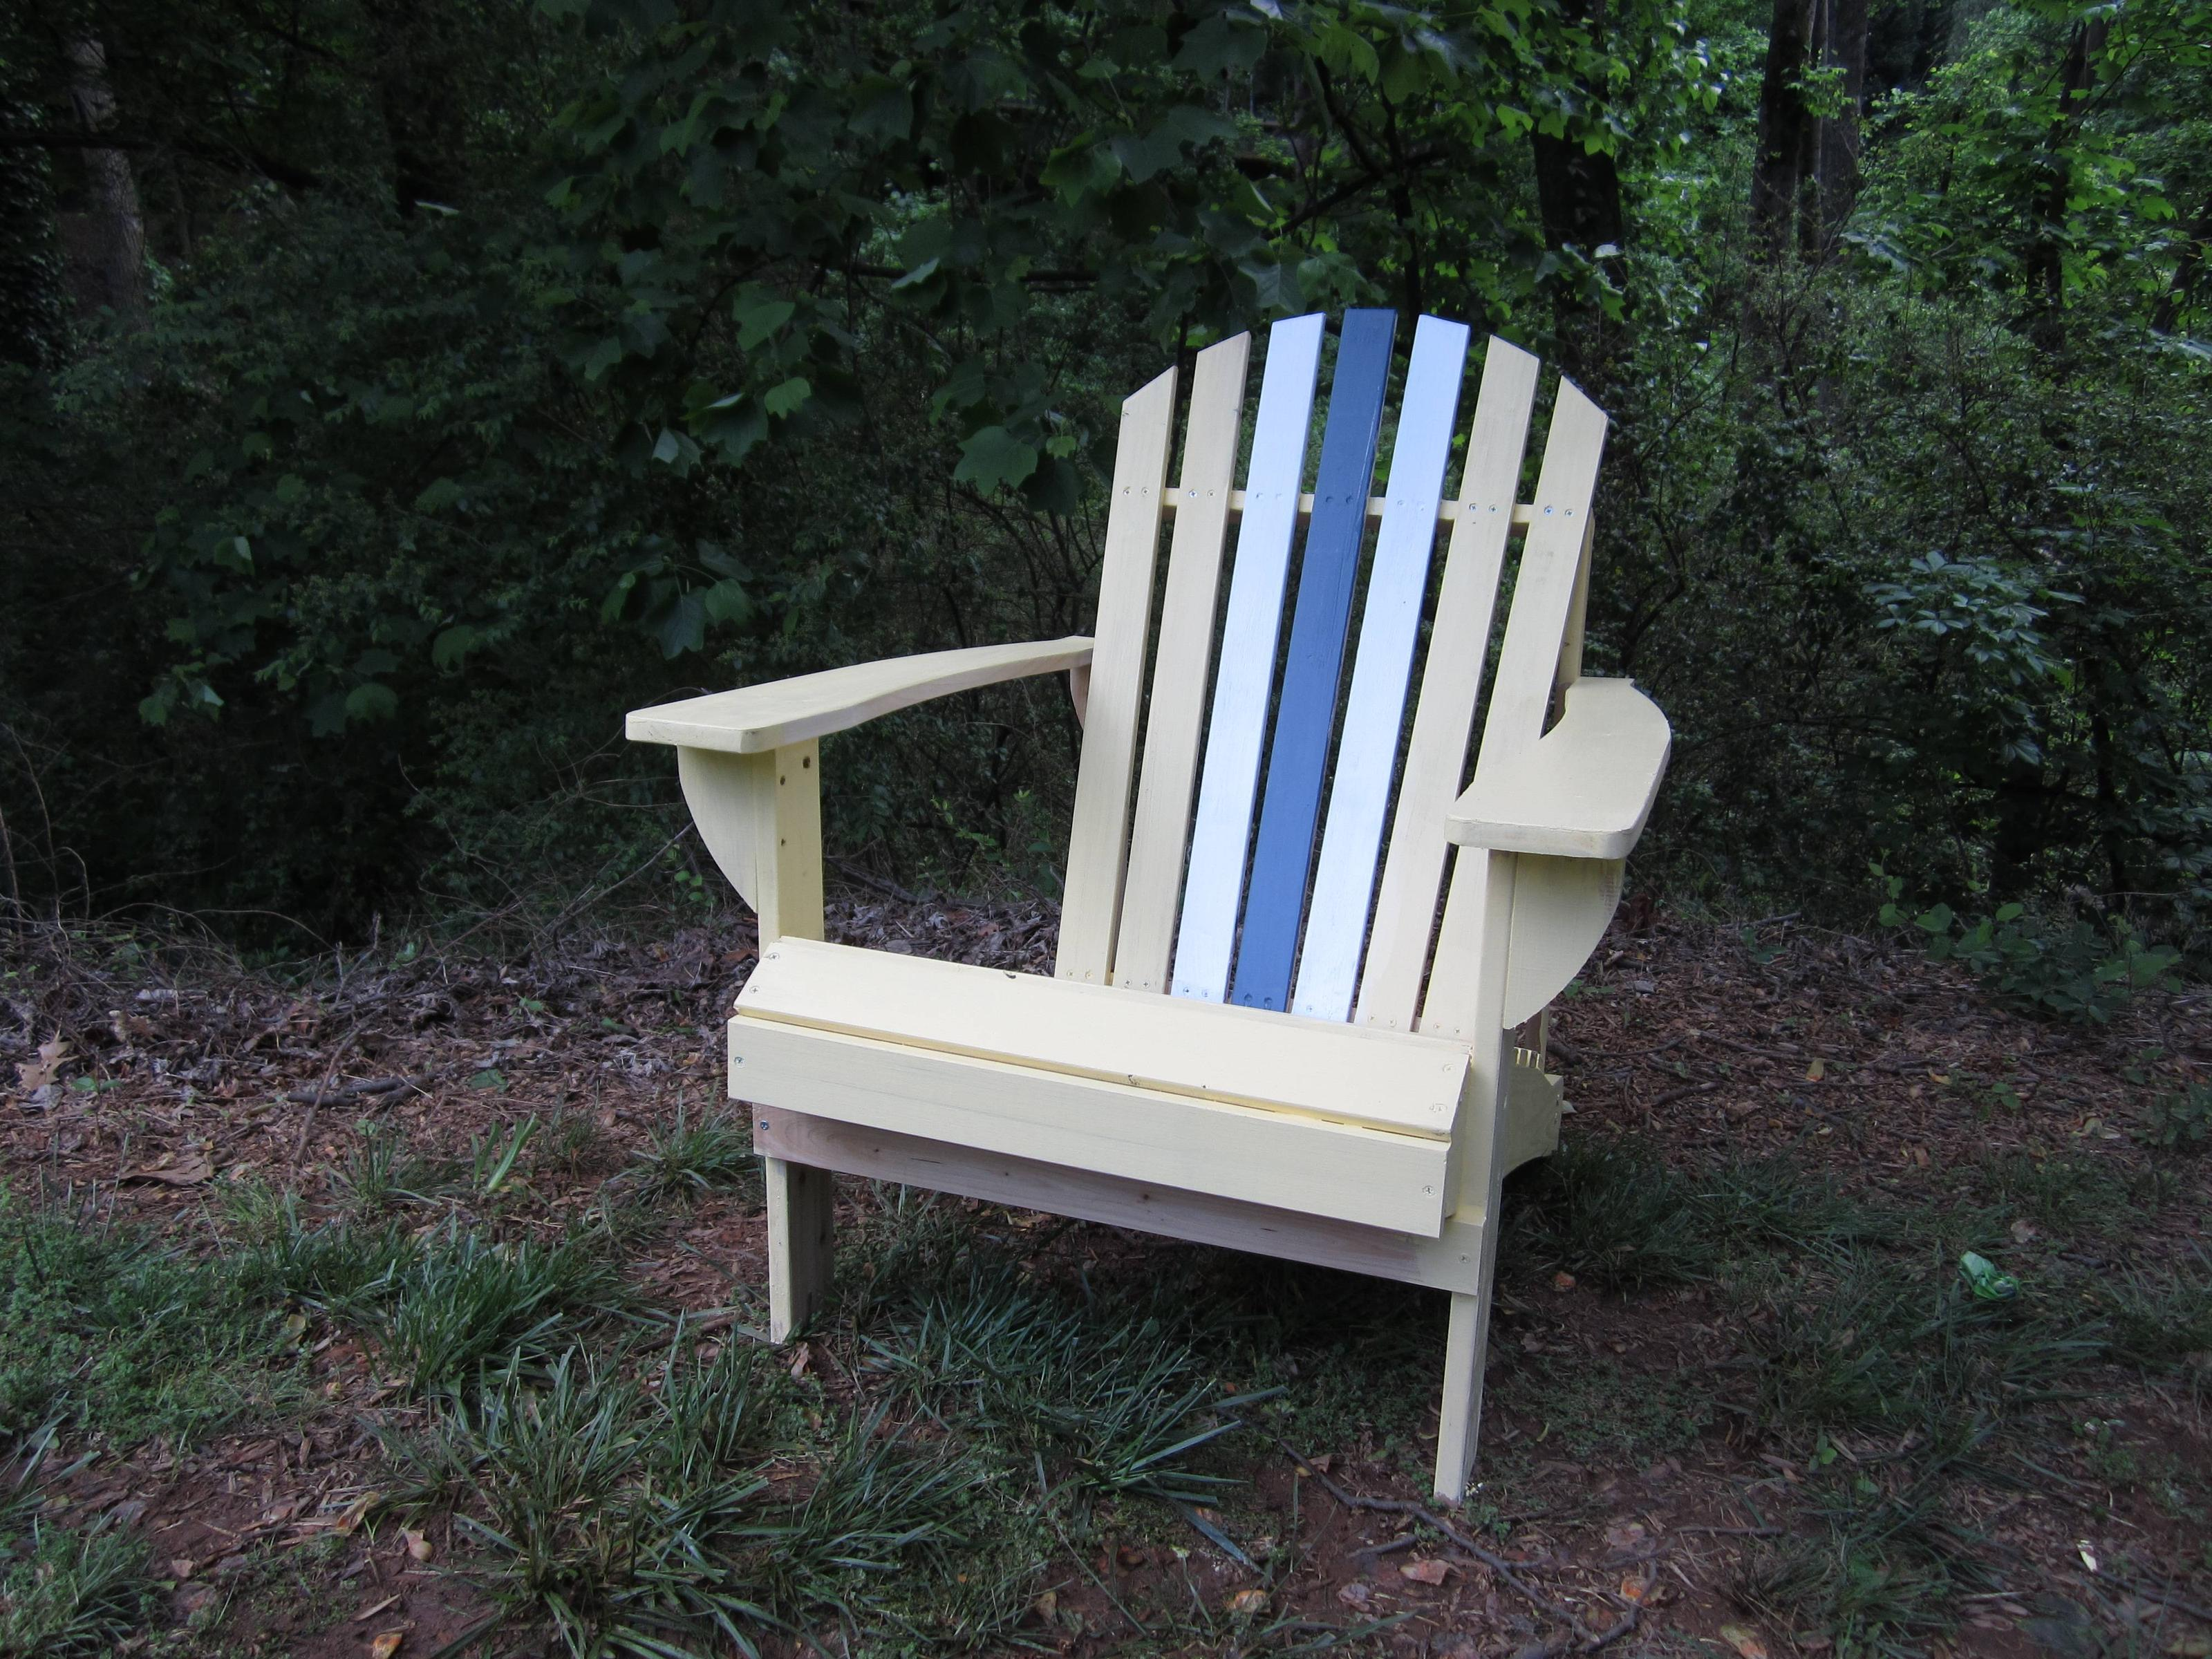 paint for adirondack chairs outdoor cushions painting of at paintingvalley com explore 3200x2400 an chair the home depot community